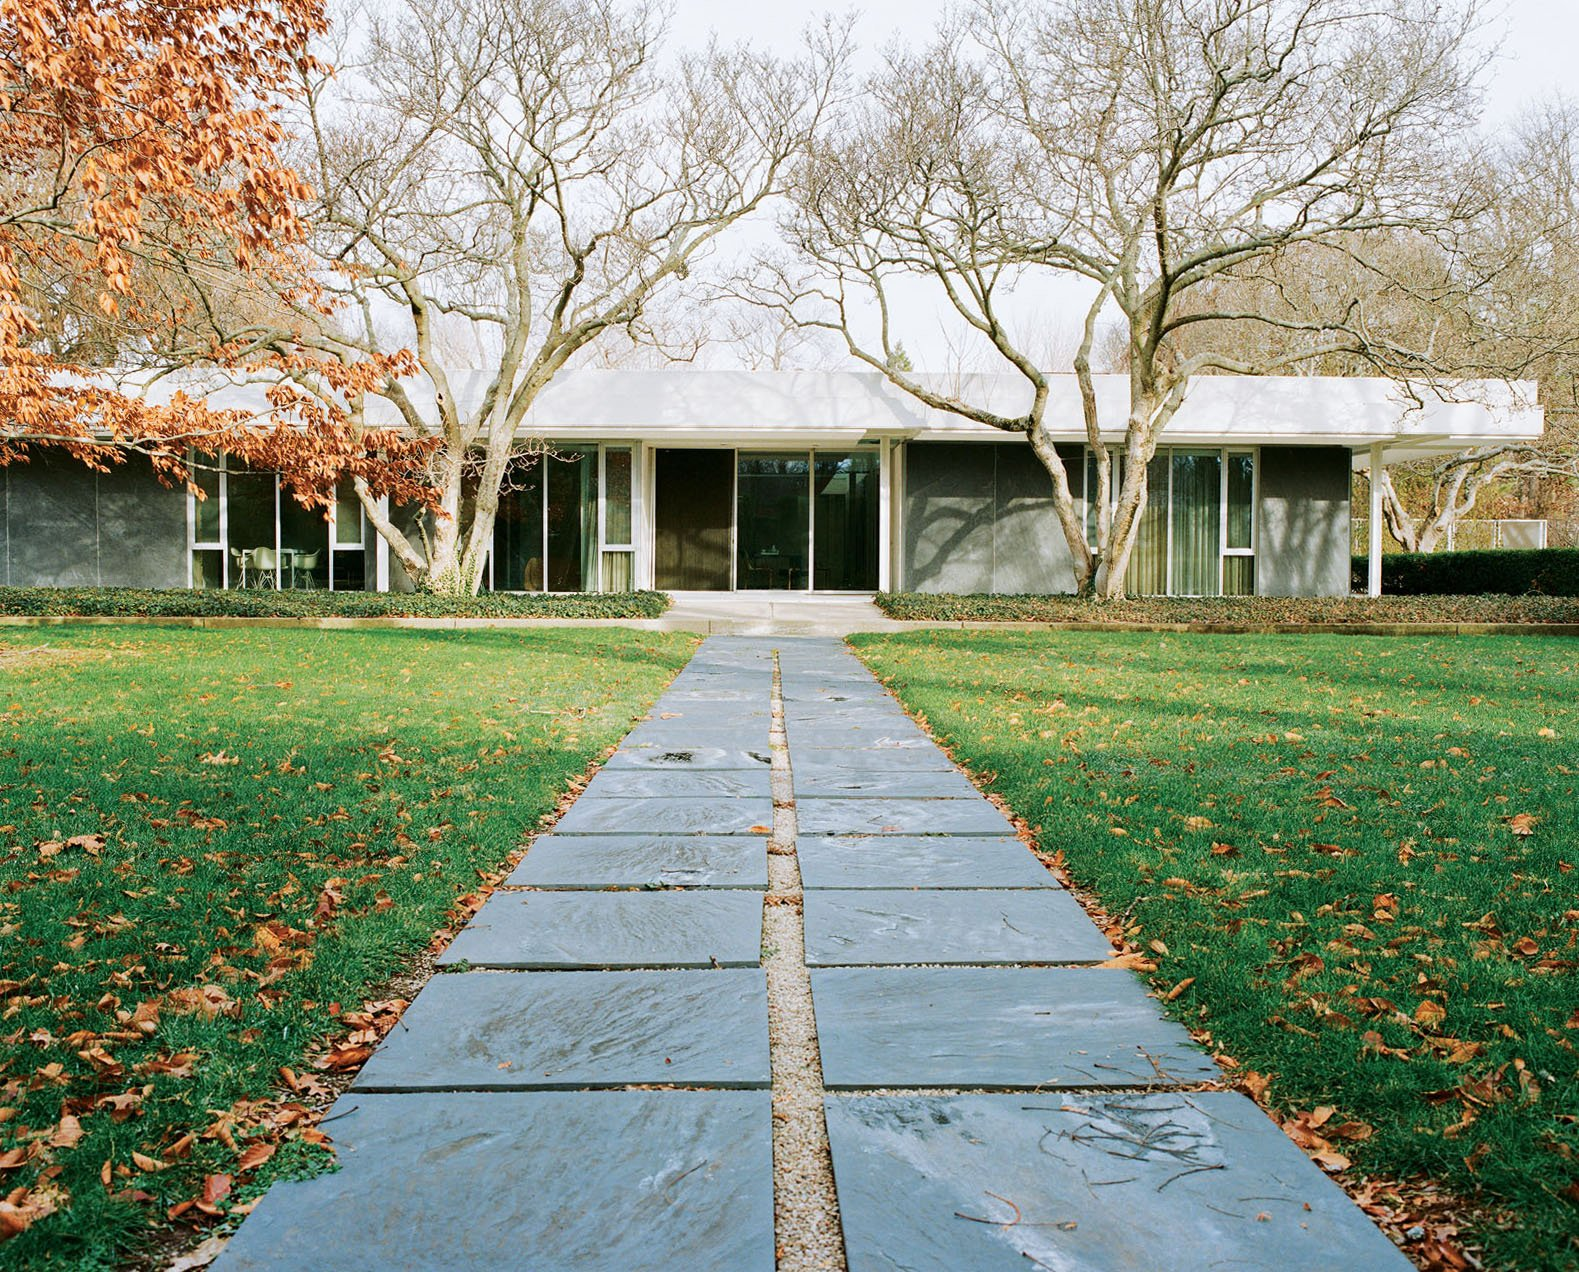 Eero Saarinen's legendary Miller House opened to the public in May 2011 for the first time. The pathway from the pool to the house is paved with the same slate that clads the exterior walls. Photo by Leslie Williamson.